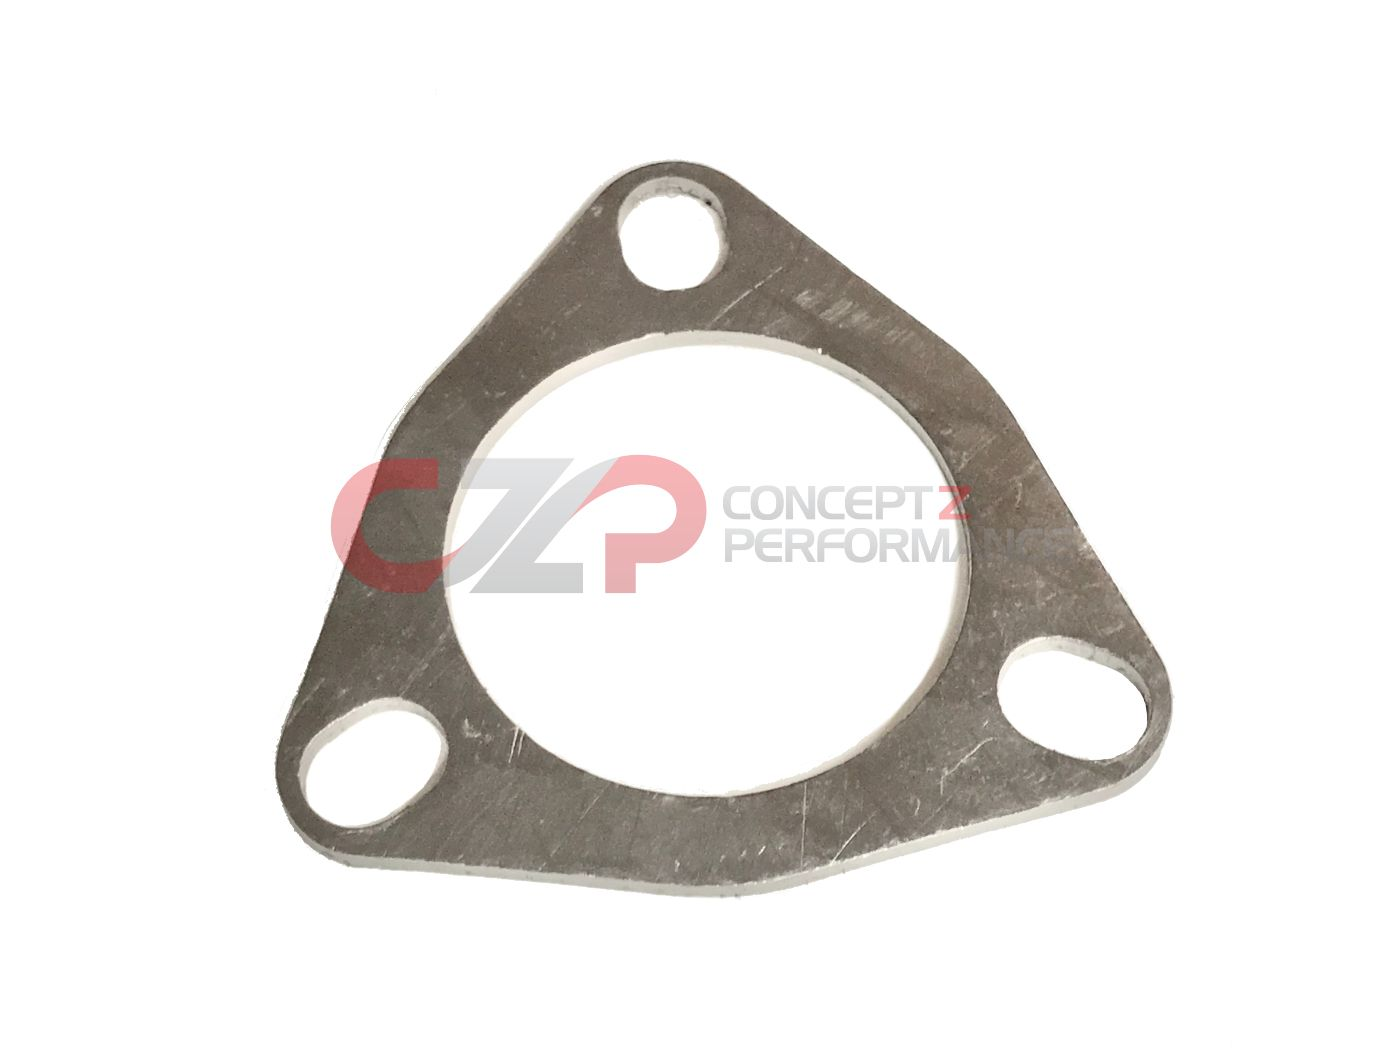 "CZP XT eXtra Thick 3 Bolt 2.5"" ID Exhaust Gasket"